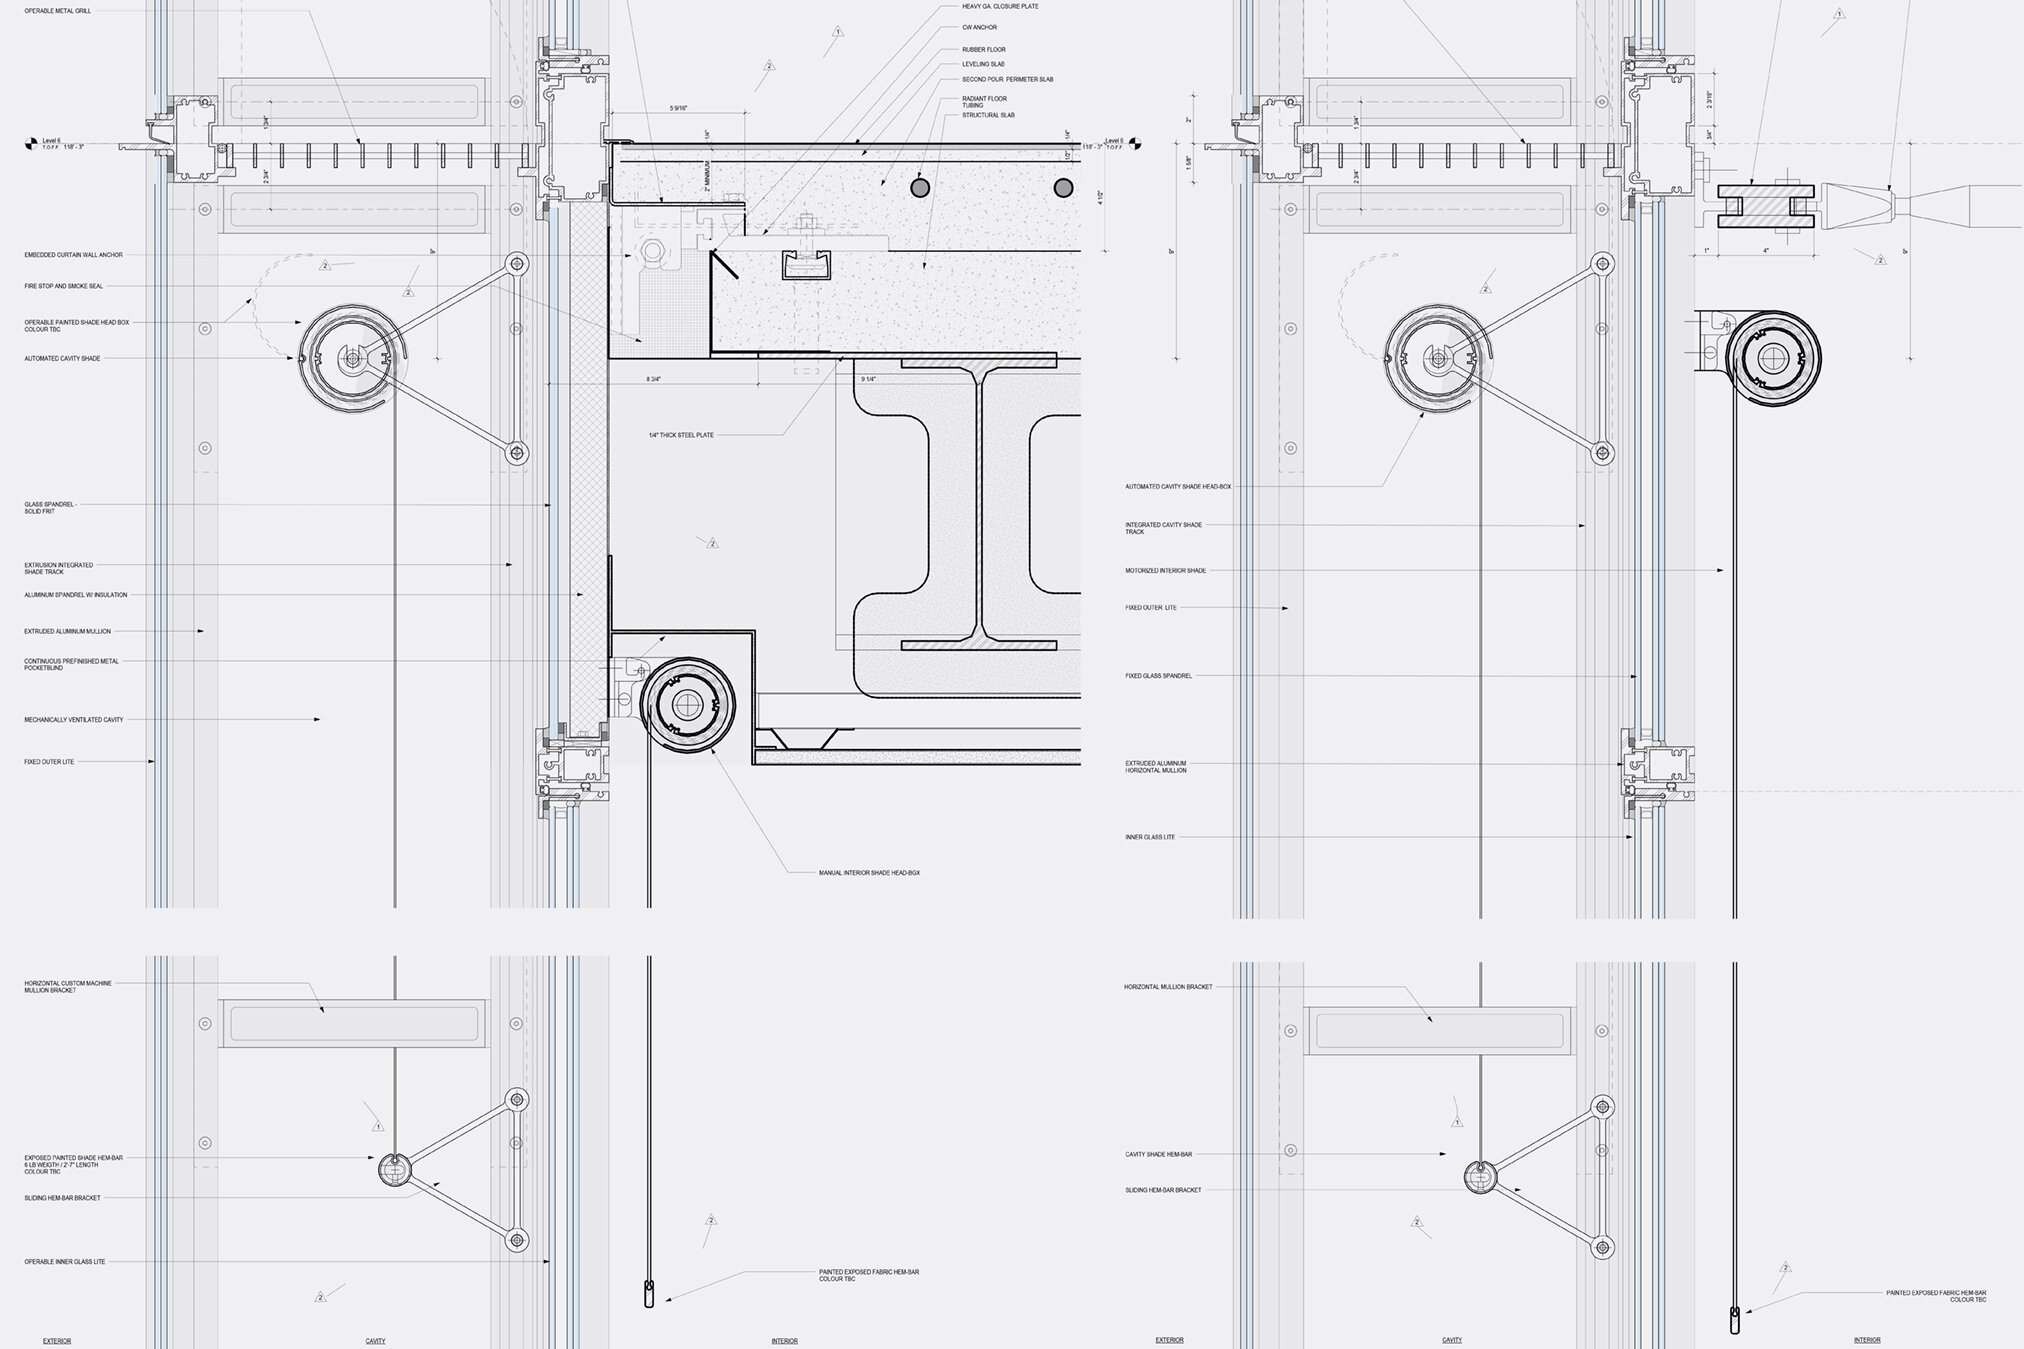 Curtain wall details (type 3)